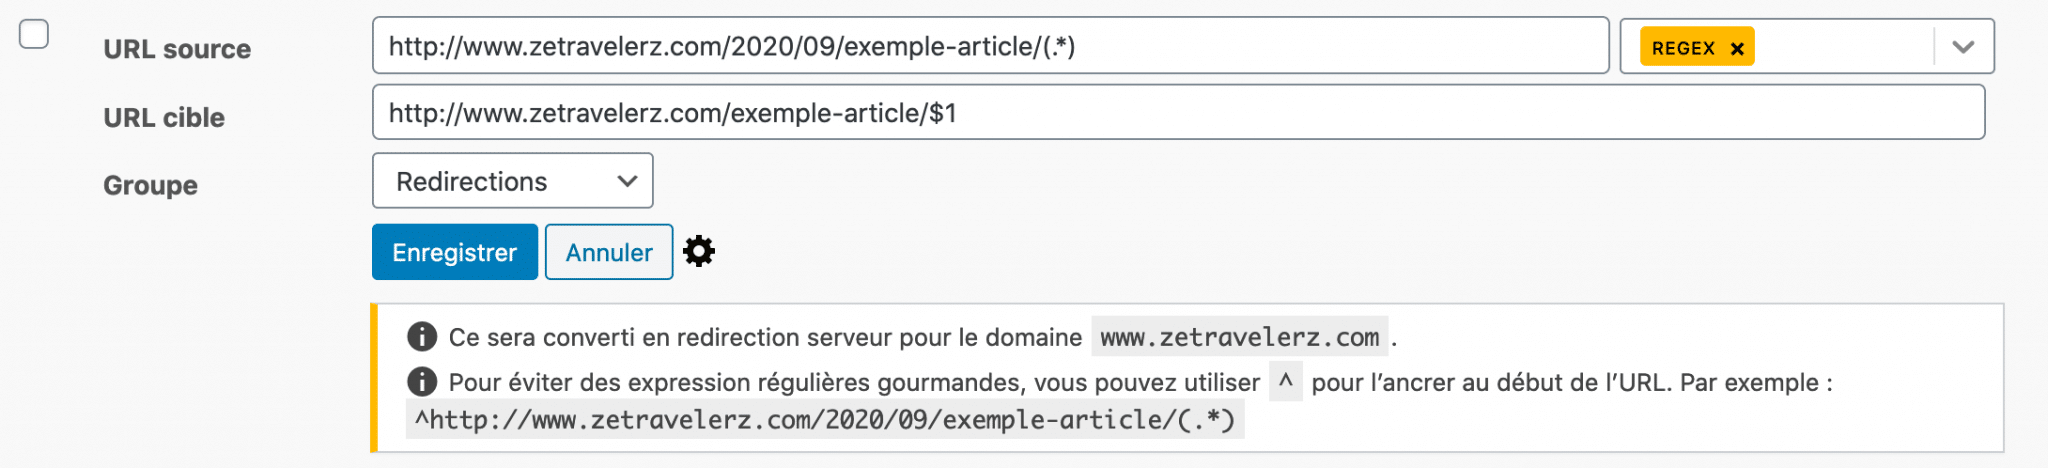 Mise en place d'une redirection regex via le plugin Redirection sur wordpress